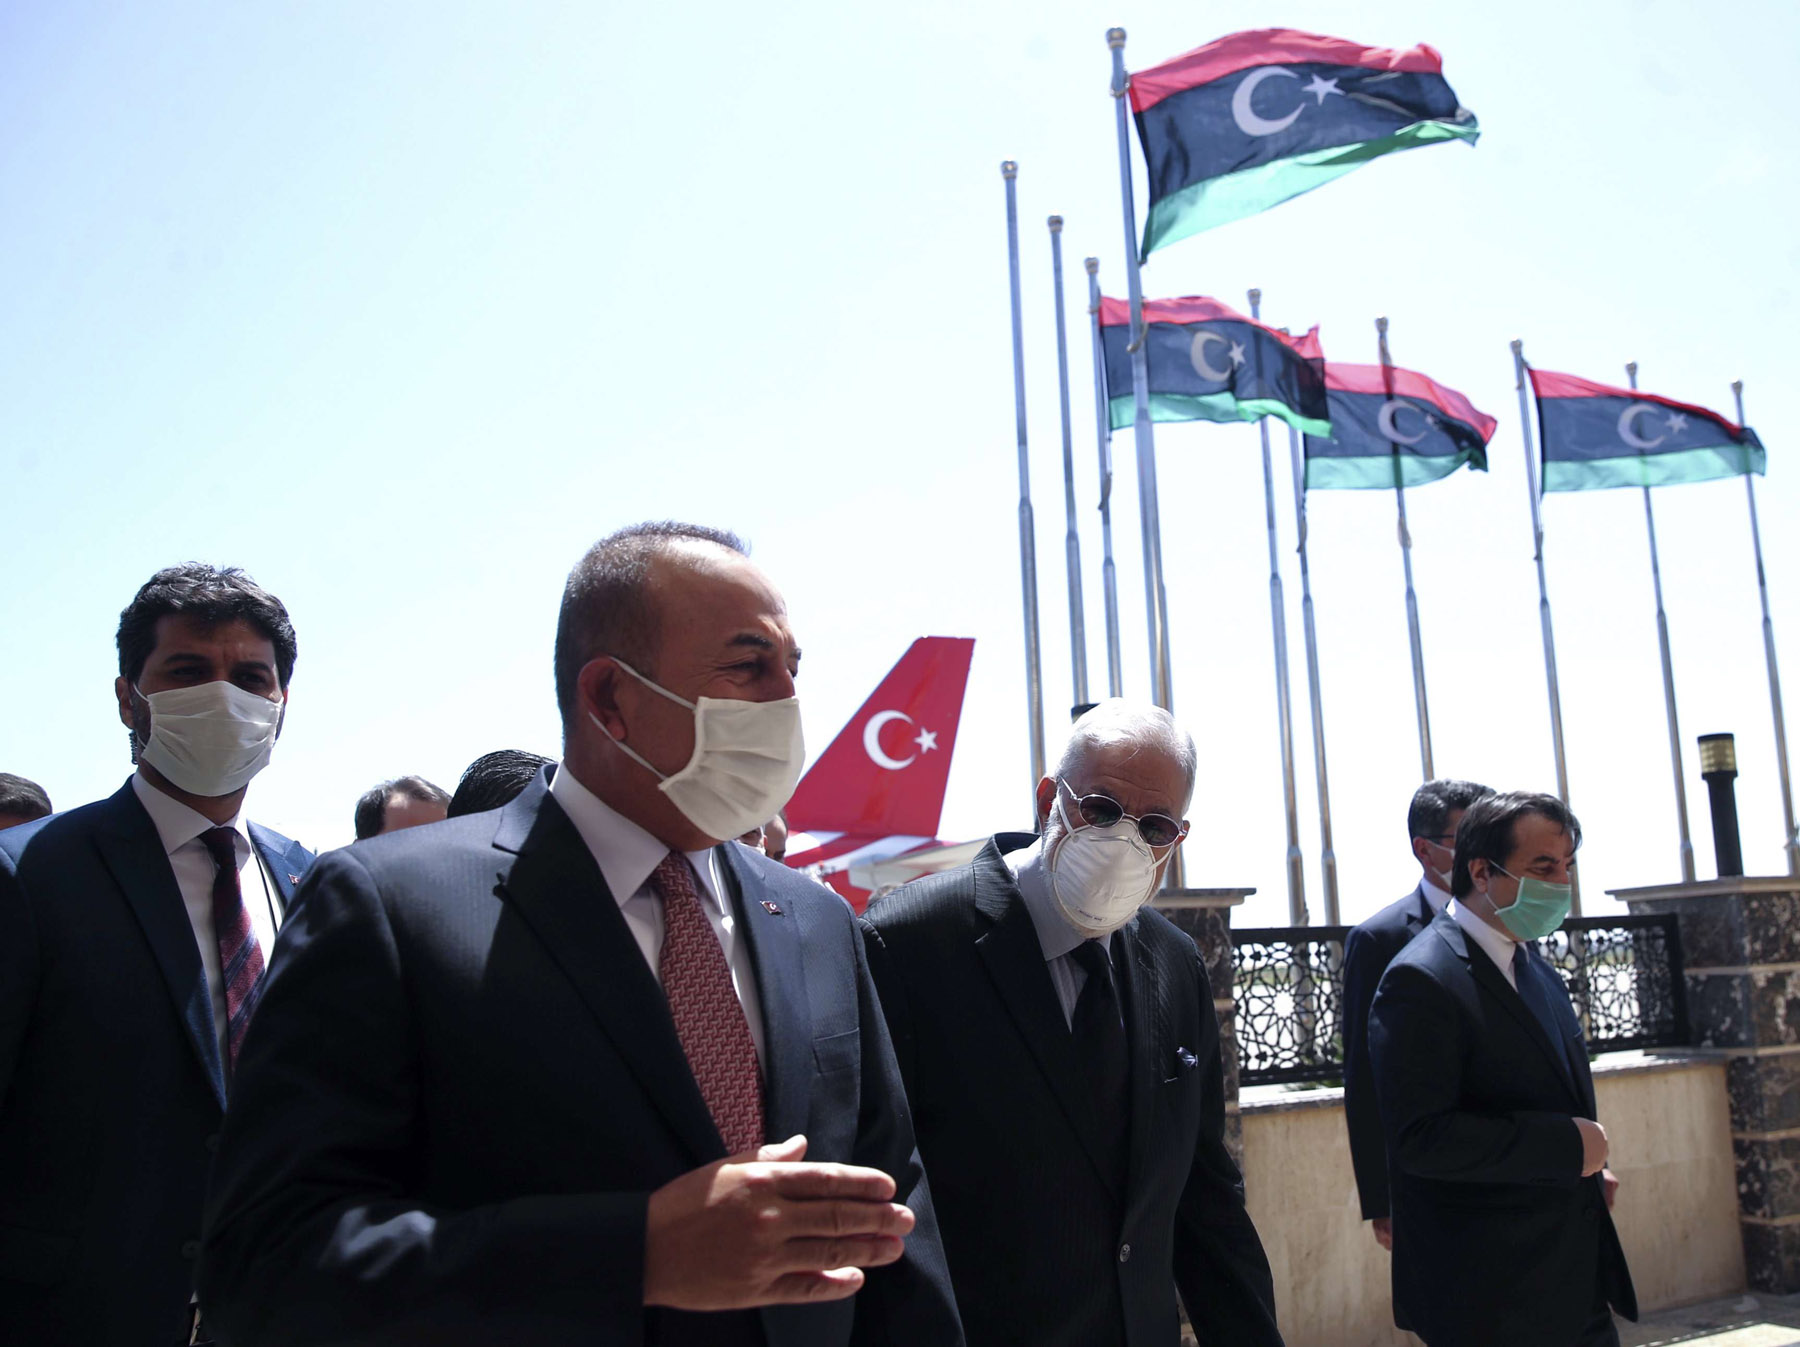 Turkish Foreign Minister Mevlut Cavusoglu, left, and Muhammed Tahir Siyala, Foreign Minister of the Tripoli-based Government of National Accord (GNA), at the airport in Tripoli,  June 17. (AP)